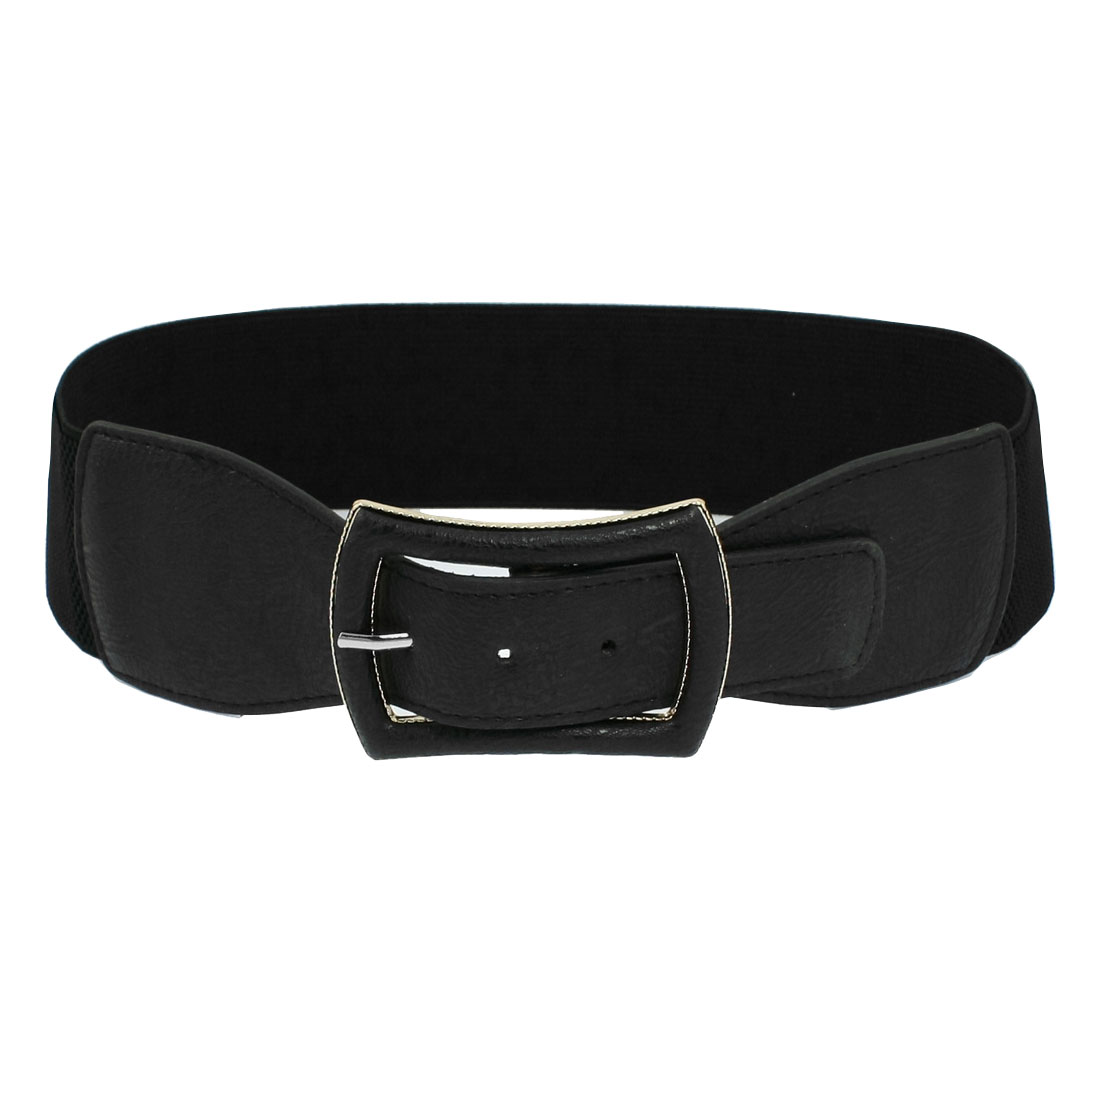 Lady Metal Single Pin Buckle Stretchy Cinch Band Waist Belt Black